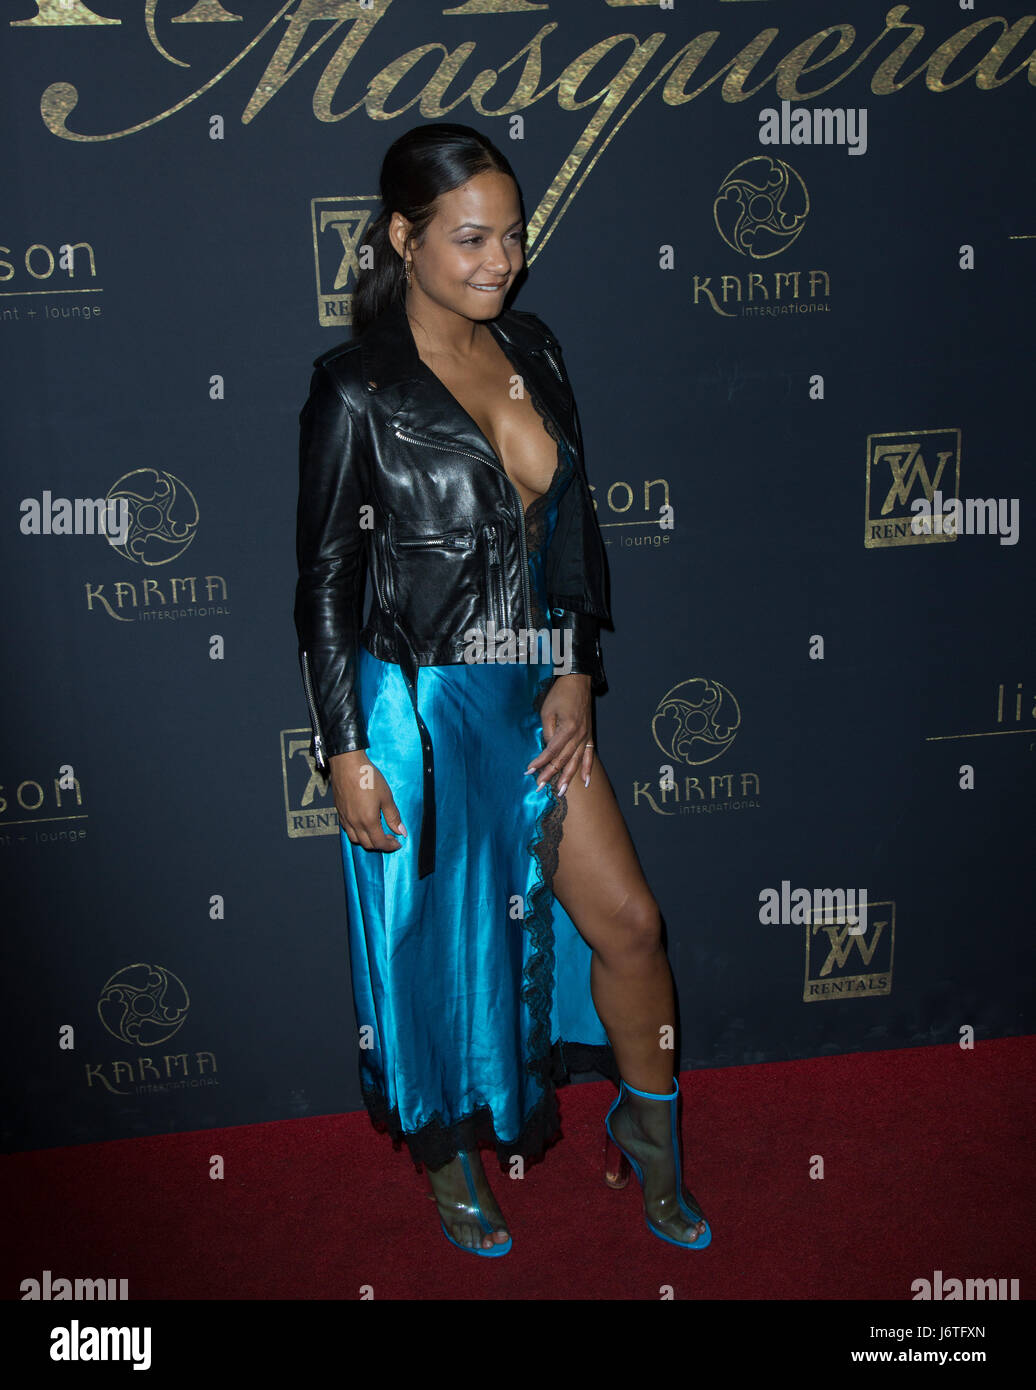 Singer / TV Personality Christina Milian attends Karma International's 9th Annual 'Karma Masquerade' - Stock Image